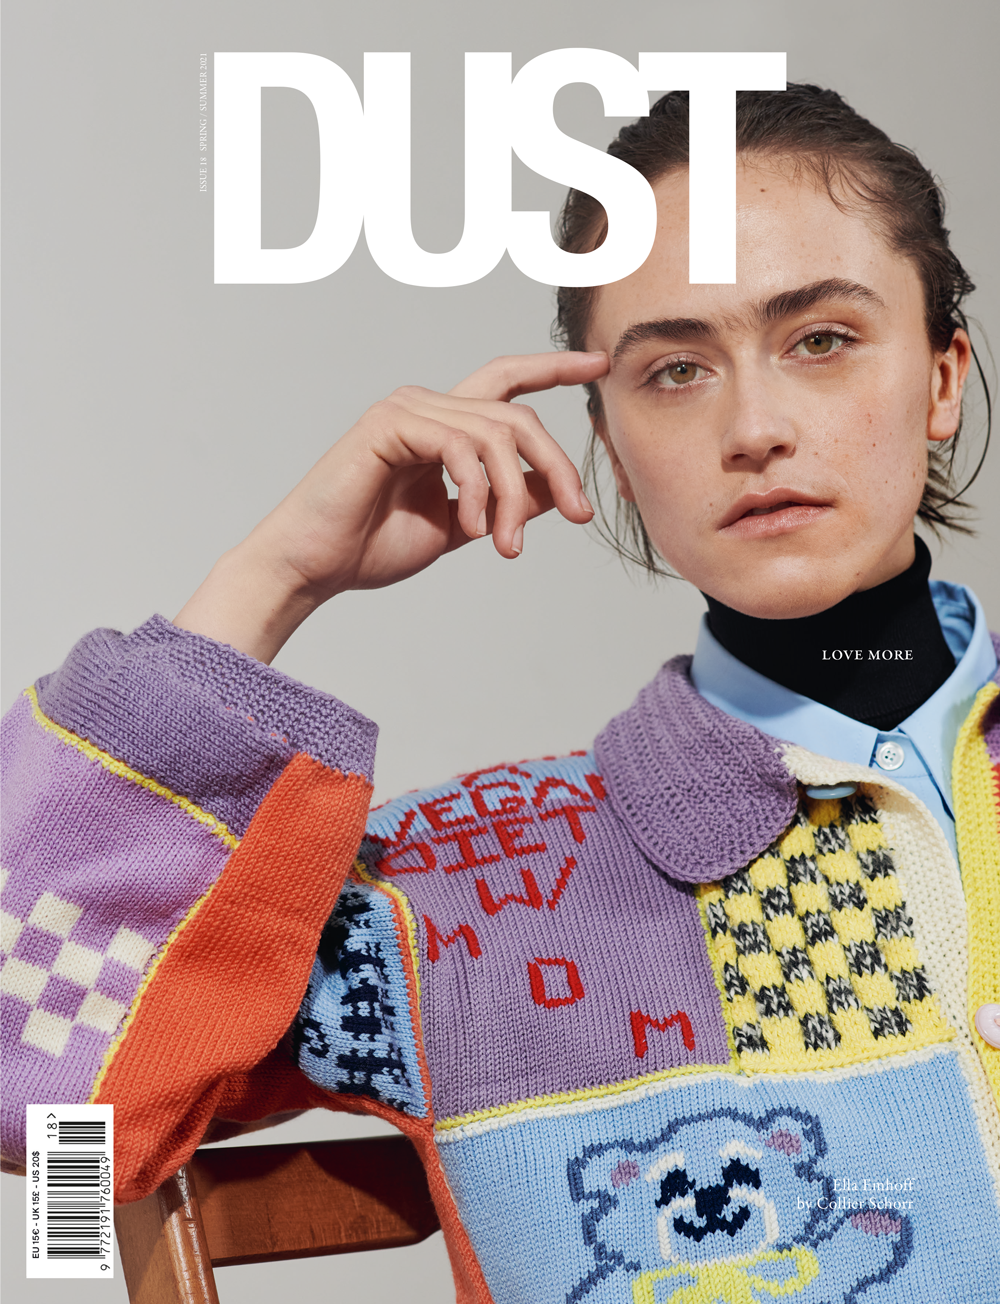 DUST ISSUE #18 LOVE MORE S/S21 – Cover #3